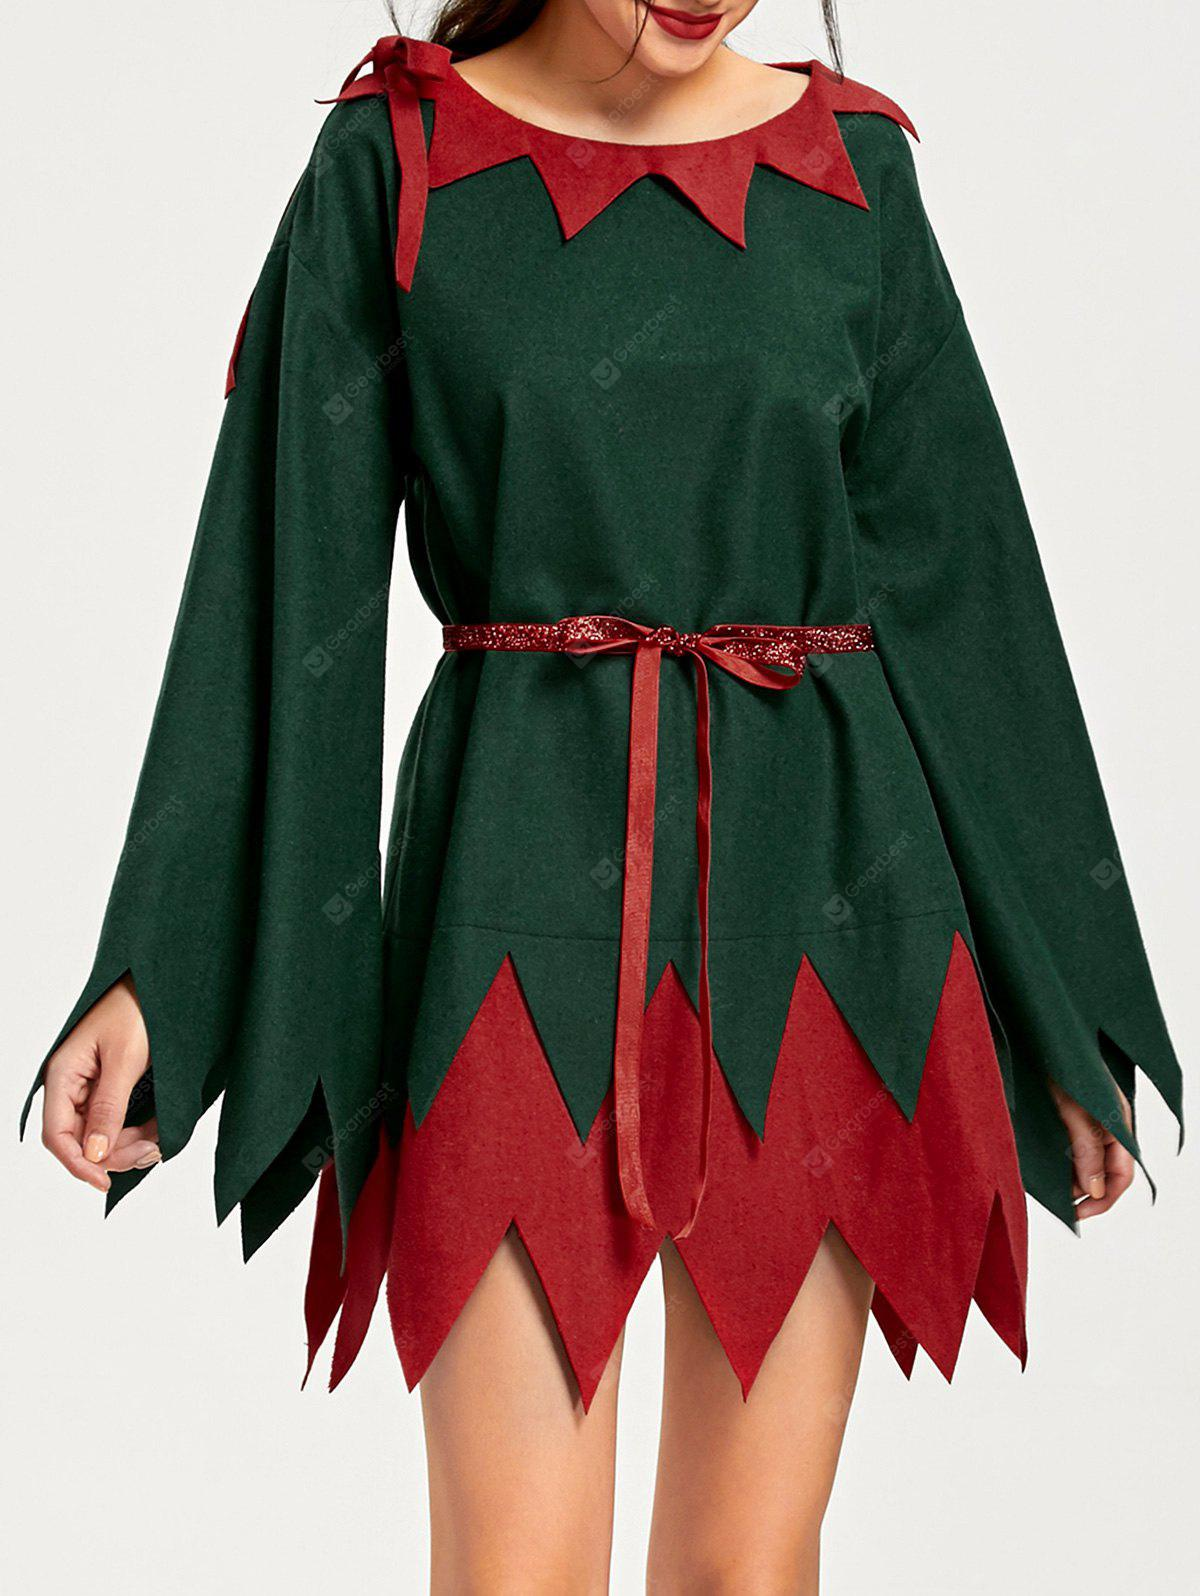 RED AND GREEN 2XL Christmas Two Tone Serrated Edge Dress